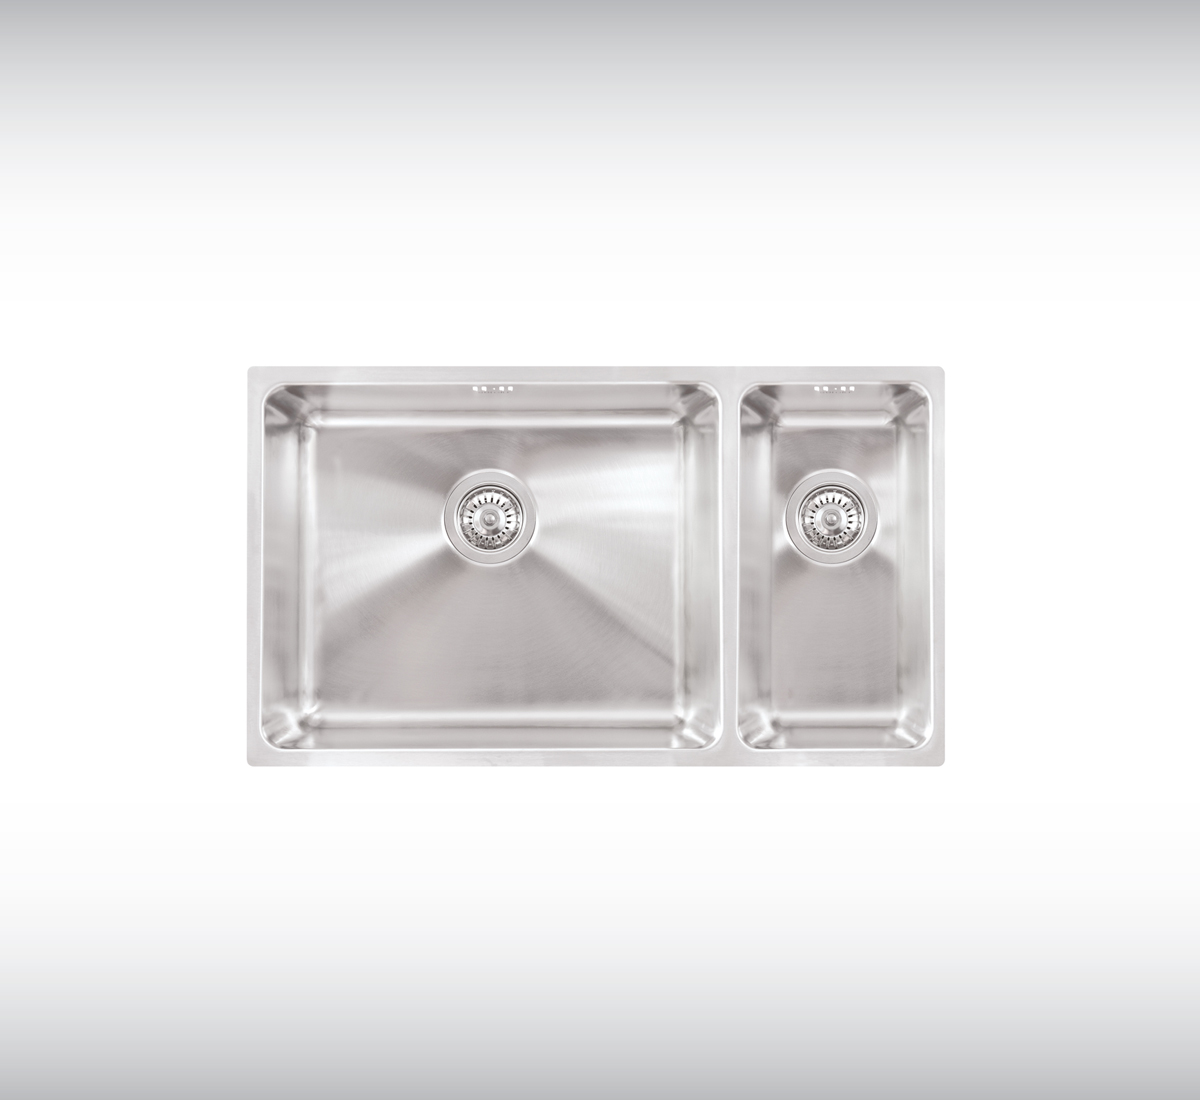 Stainless Steel Sink UBD-790L